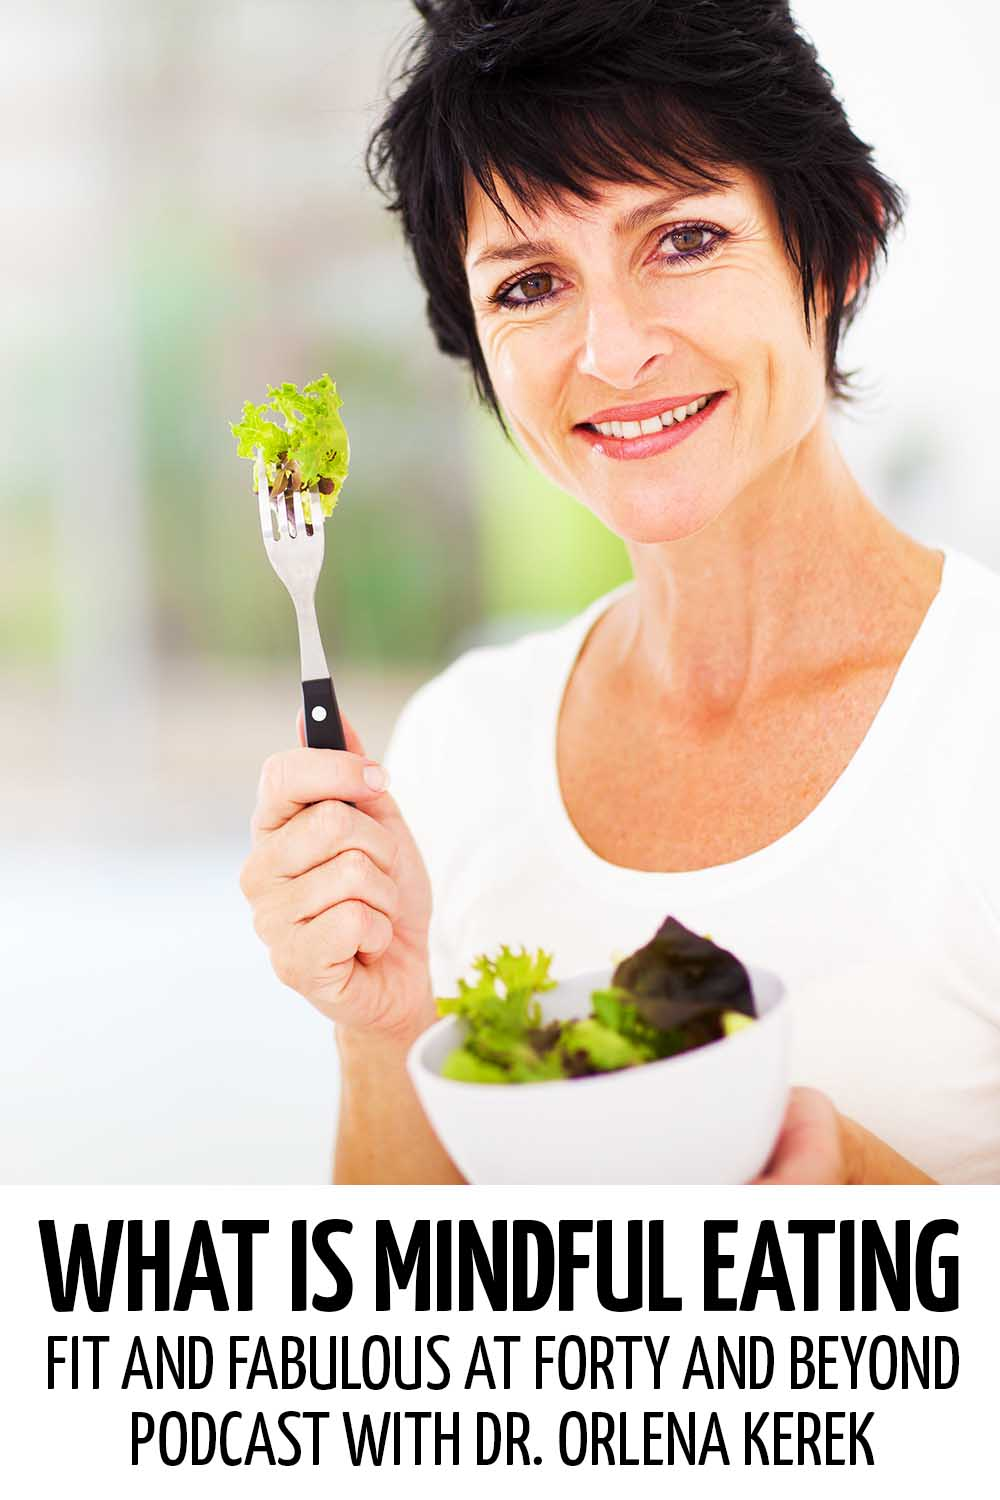 A middle-aged woman eating a bowl of salad #healthy #healthylife #healthyliving #healthylifetips #healthylivingtips #healthylivingmotivation #lifestyle #healthylifestyle #positivity #selfimprovement #weightloss #loseweight #mindfuleating #whatismindfuleating #mindfuleatingtips #mindfuleatingchallenge #mindfuleatingstress #mindfuleatinglosingweight #mindfuleatingexercise #mindfuleatingmantra